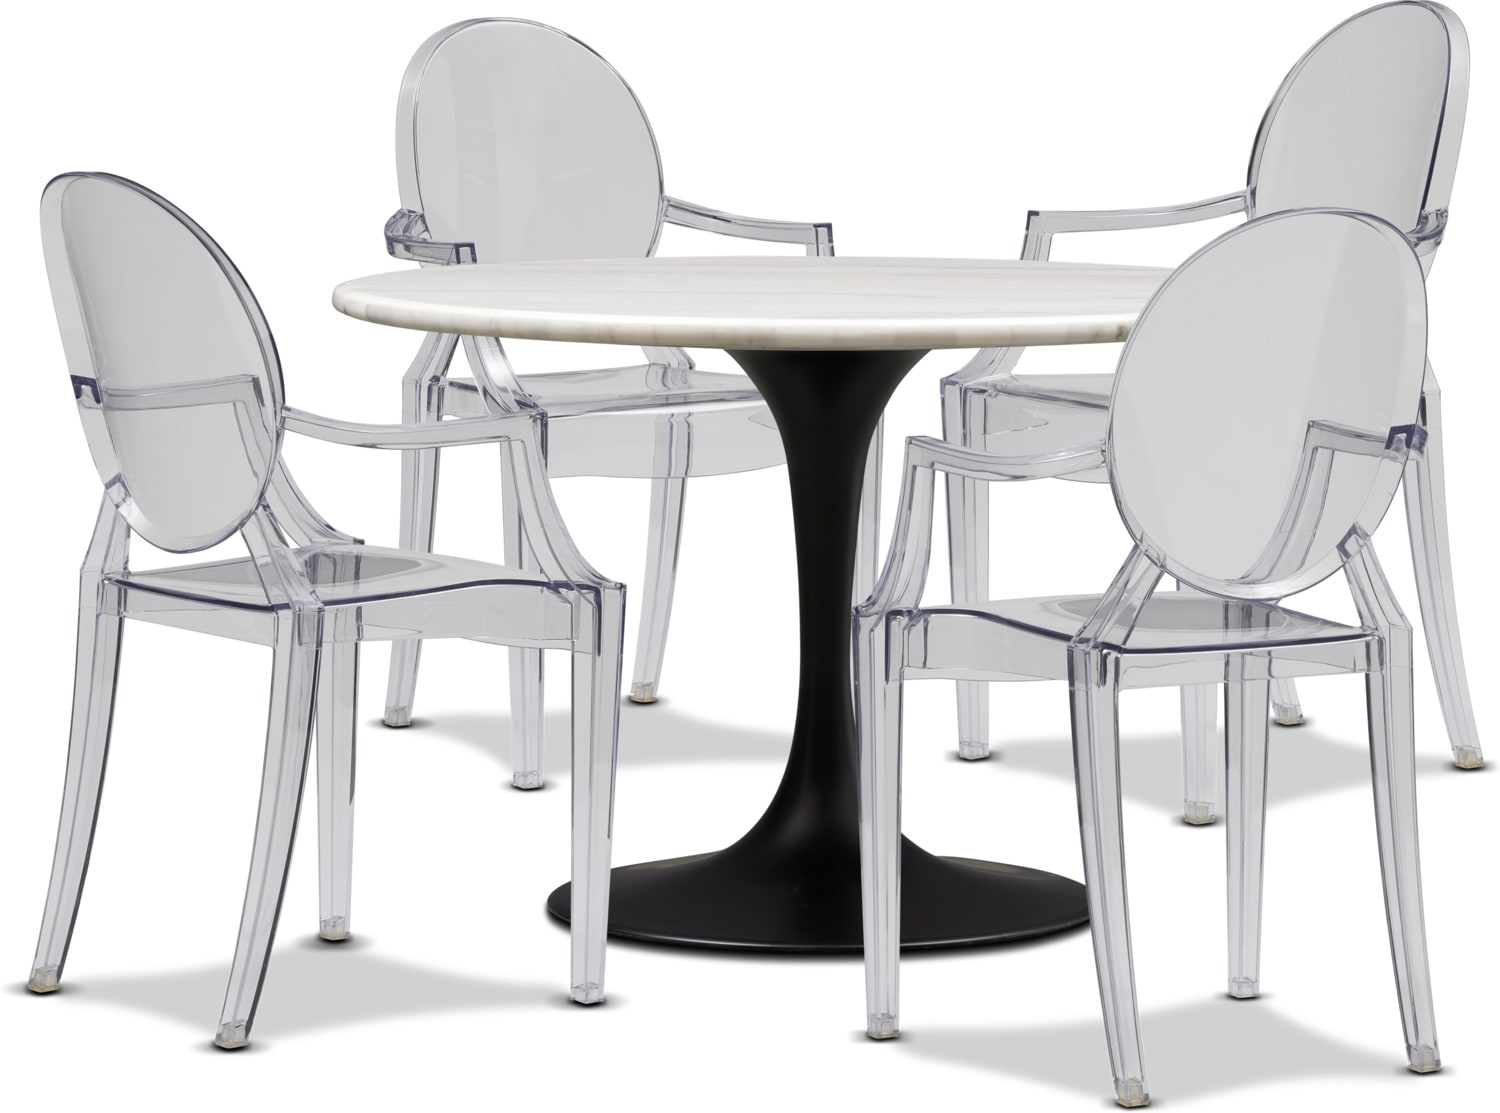 Dining Room Furniture - Lillian Dining Table and 4 Arm Chairs - Clear